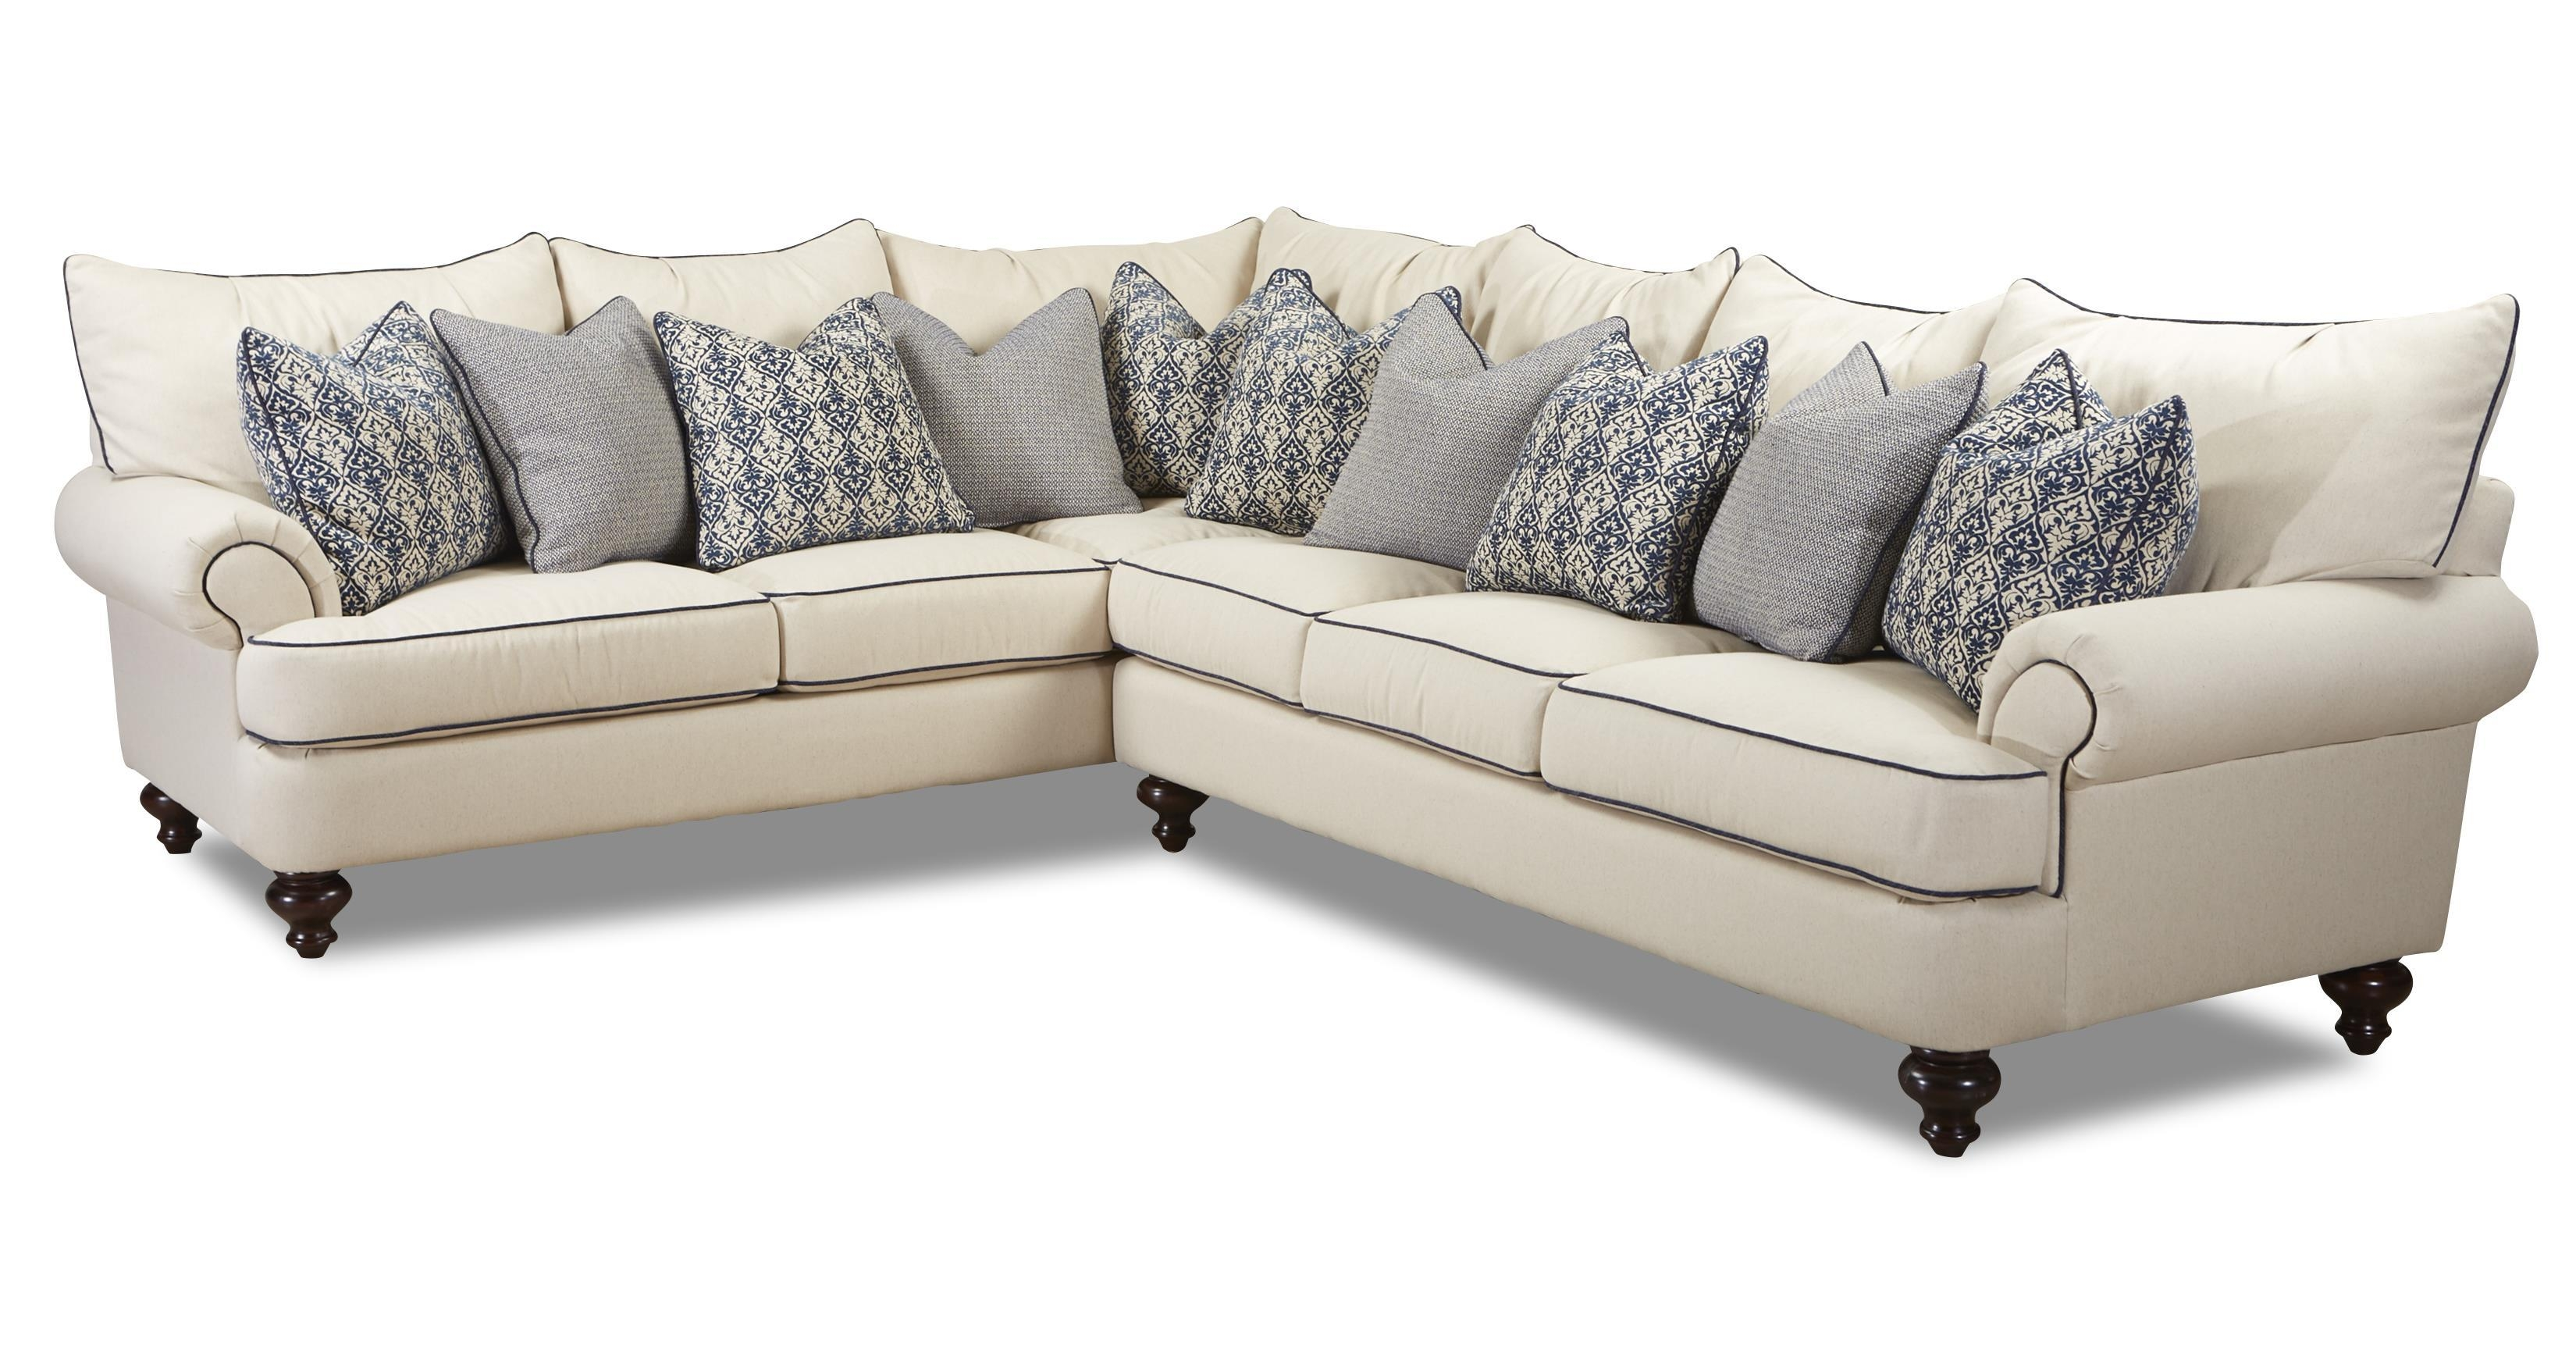 Klaussner Ashworth Shabby Chic Sectional Sofa – Wayside Furniture For Shabby Chic Sofa (View 2 of 20)